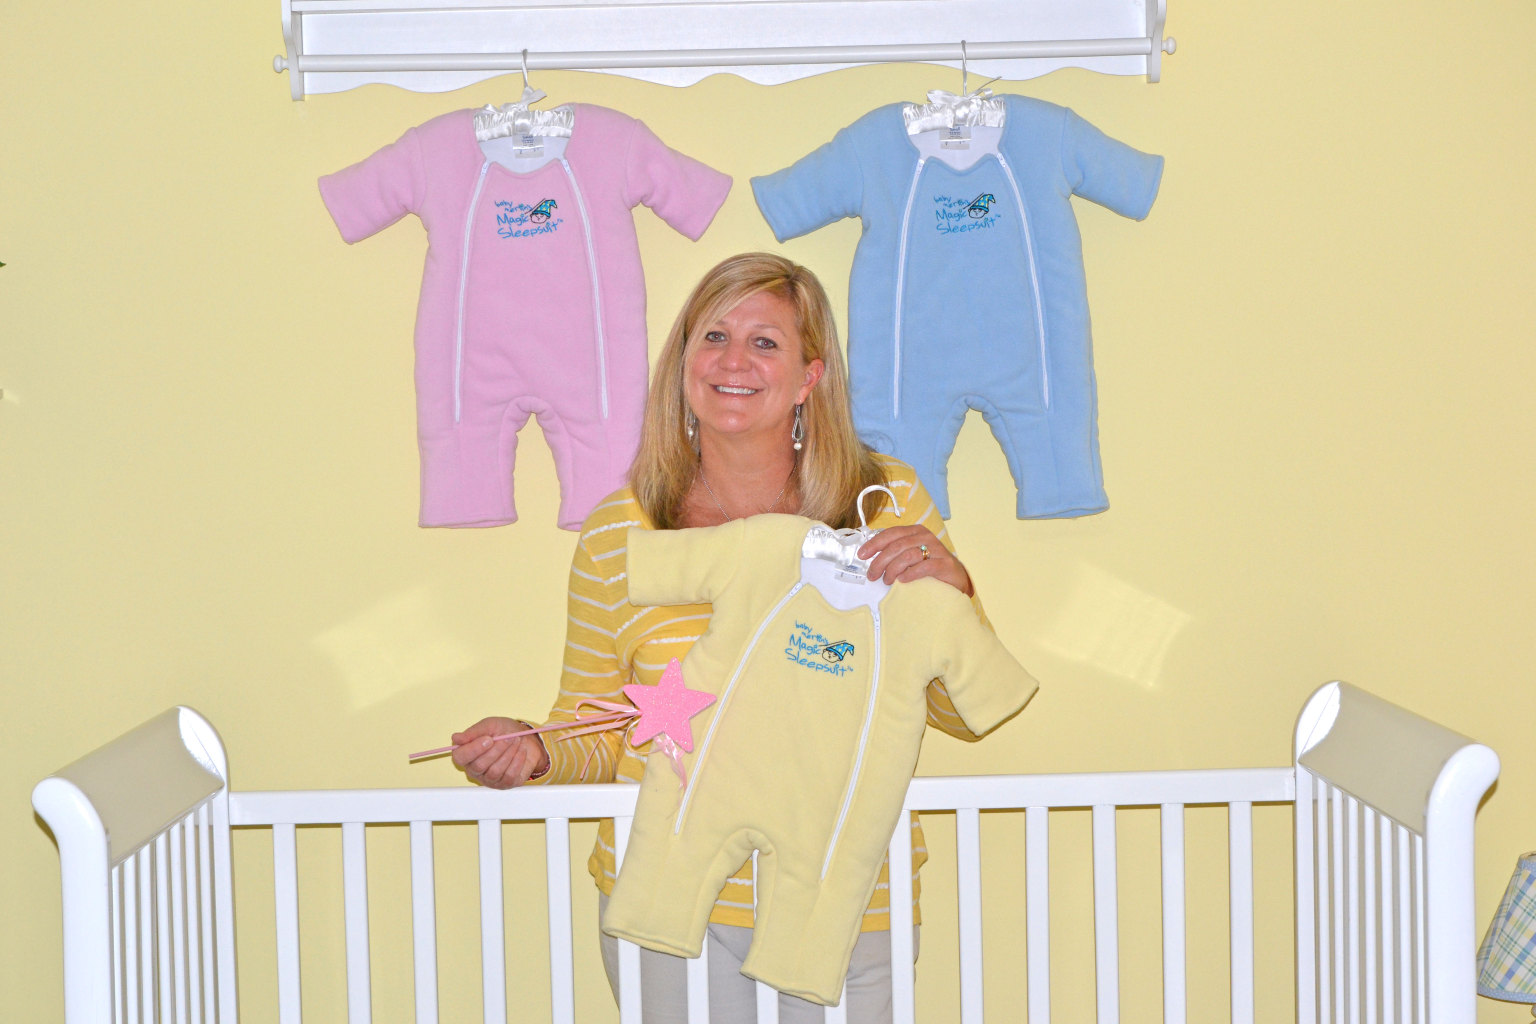 Smartly Dock A Tot Merlin Sleepsuit Vs Nested Bean Exhausted Idea Makes Millions Huffpost Merlin Sleepsuit baby Merlin Sleep Suit